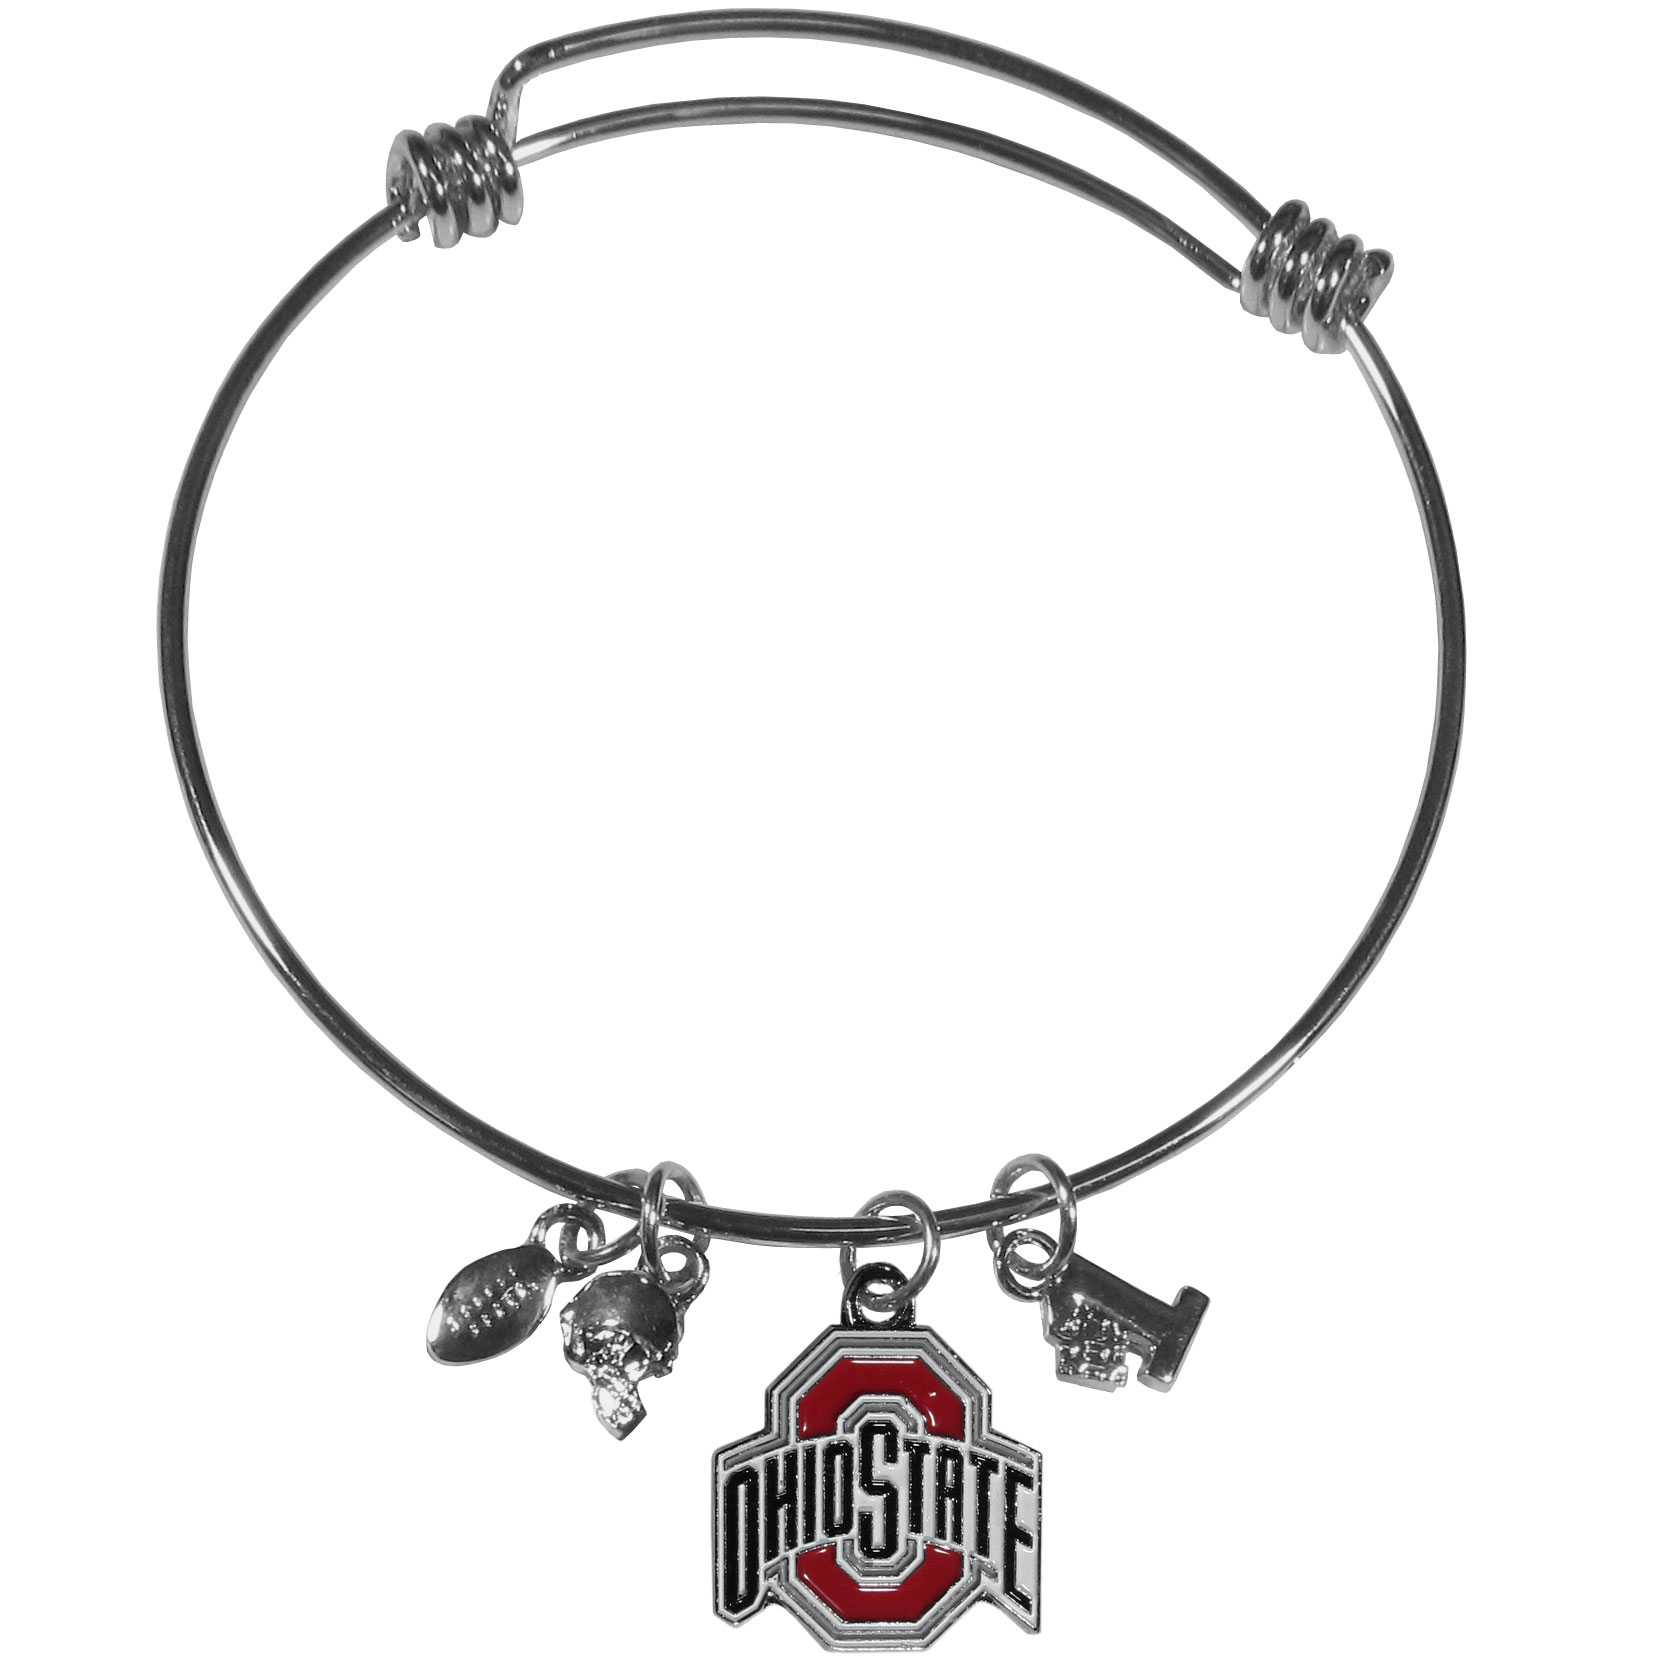 Ohio St. Buckeyes Charm Bangle Bracelet - Adjustable wire bracelets are all the rage and this Ohio St. Buckeyes bracelet matches the popular trend with your beloved team. The bracelet features 4 charms in total, each feature exceptional detail and the team charm has enameled team colors.